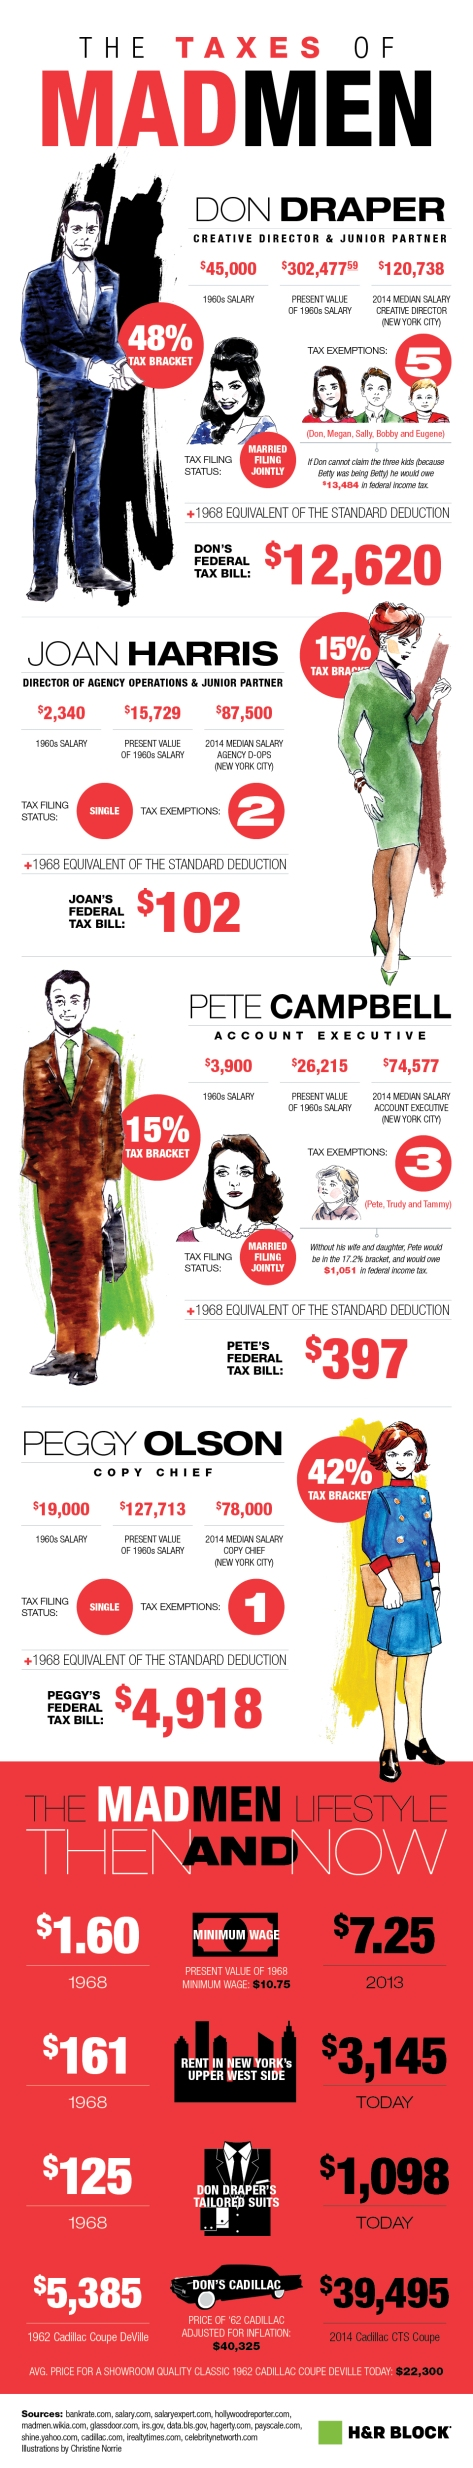 Mad Men Taxes Infographic